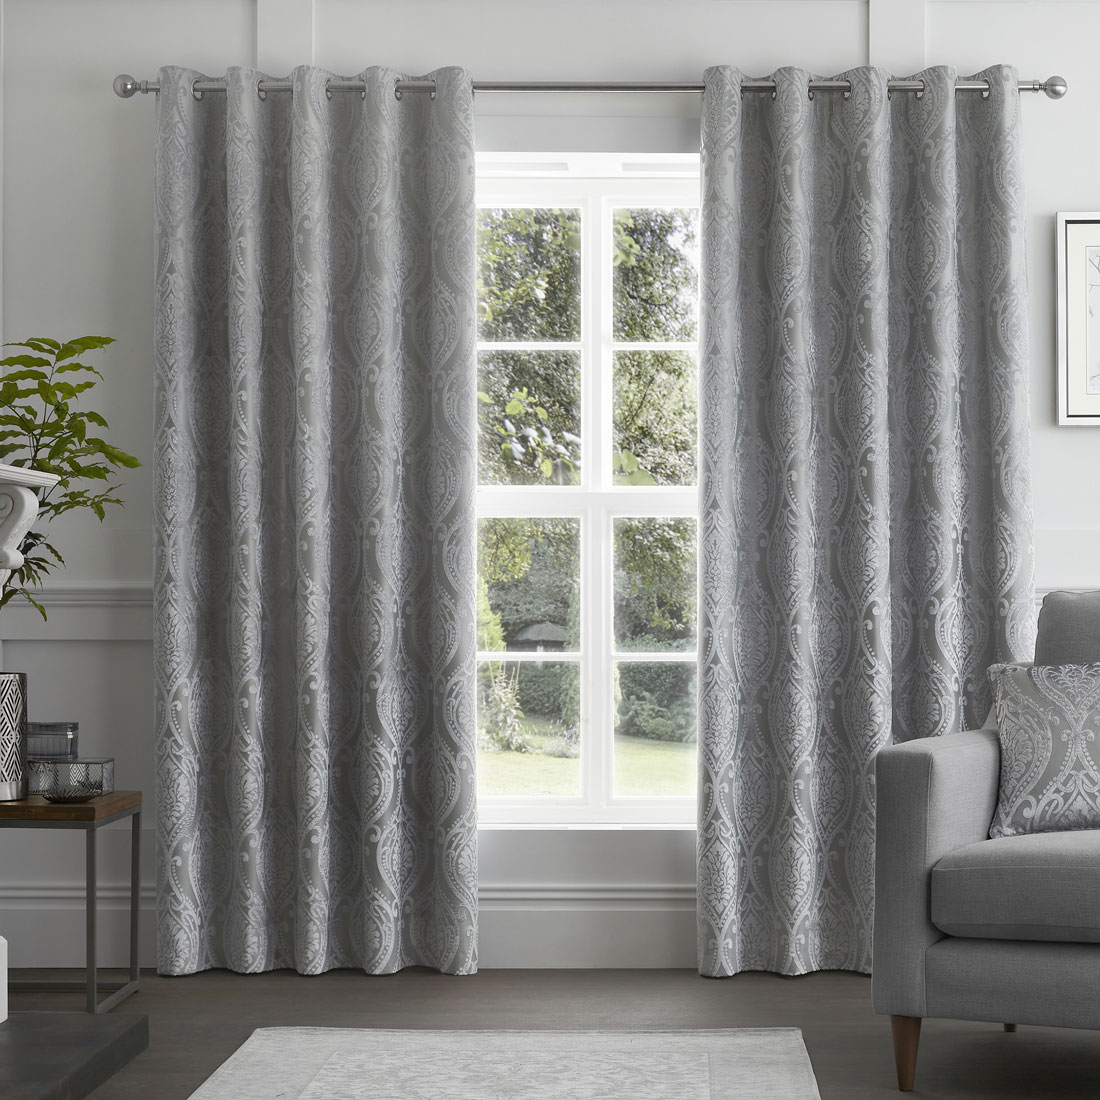 Chateau Devore Silver Eyelet Curtains